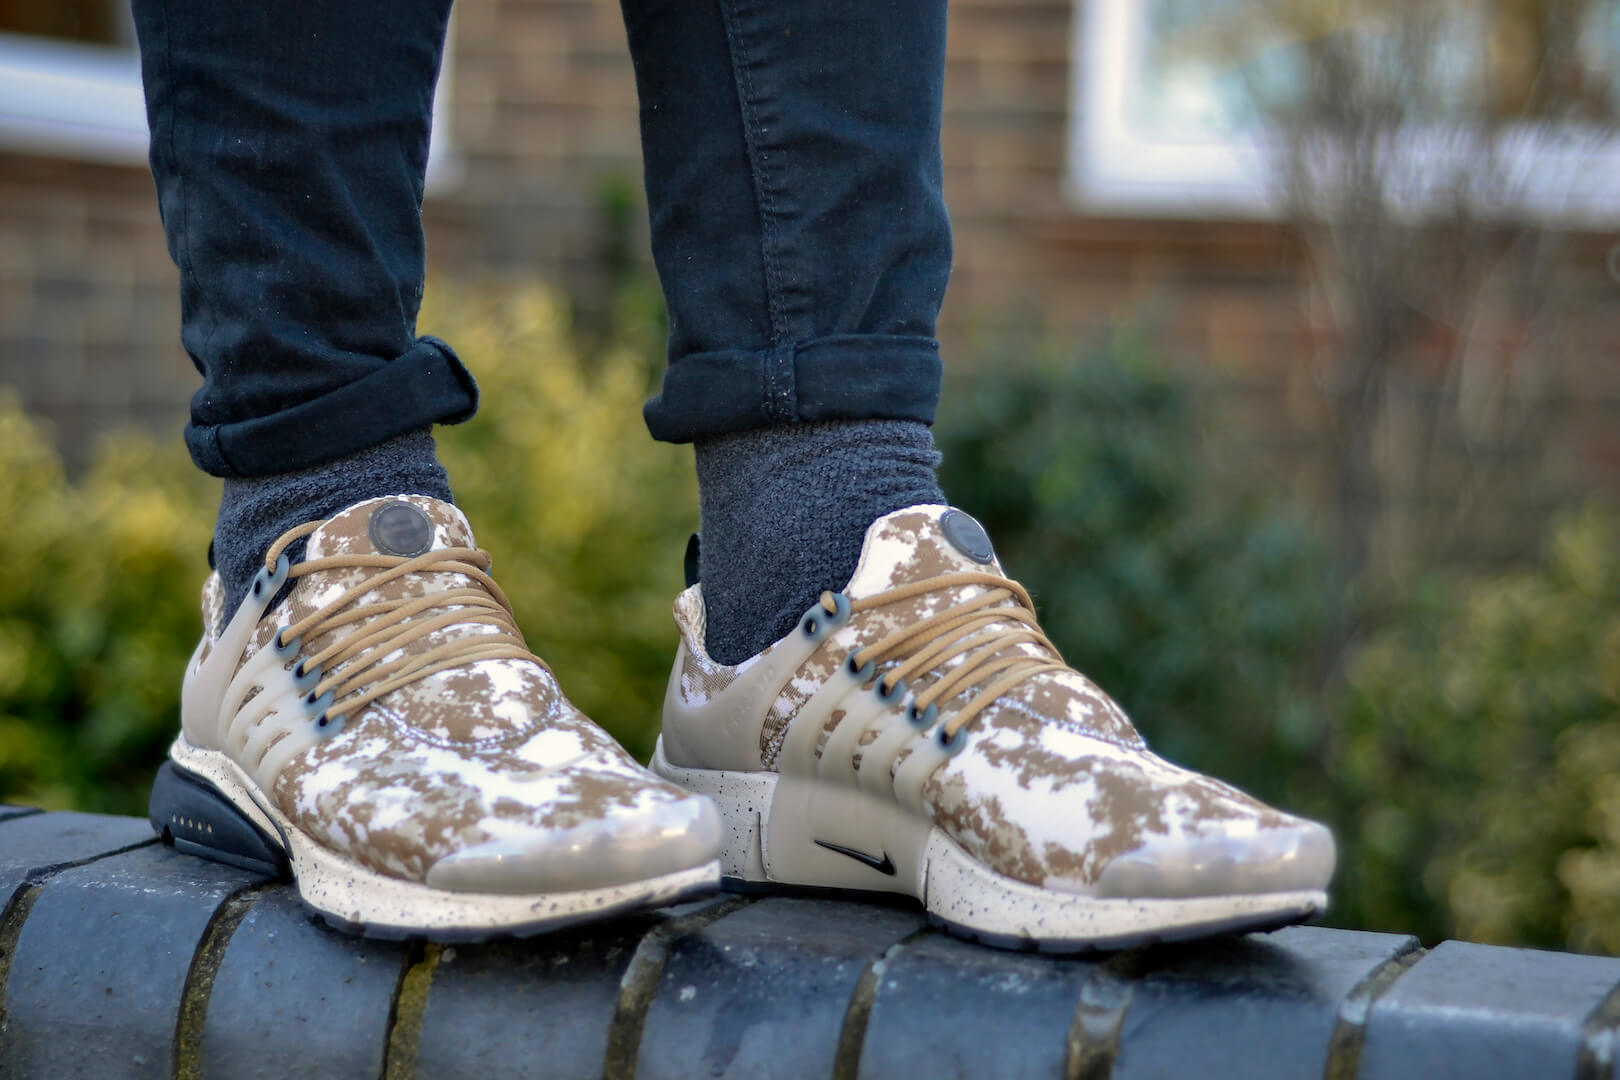 lowest price 972d9 e62fc Nike Air Presto GPX 'Digi Camo // On-foot | Natterjacks Blog